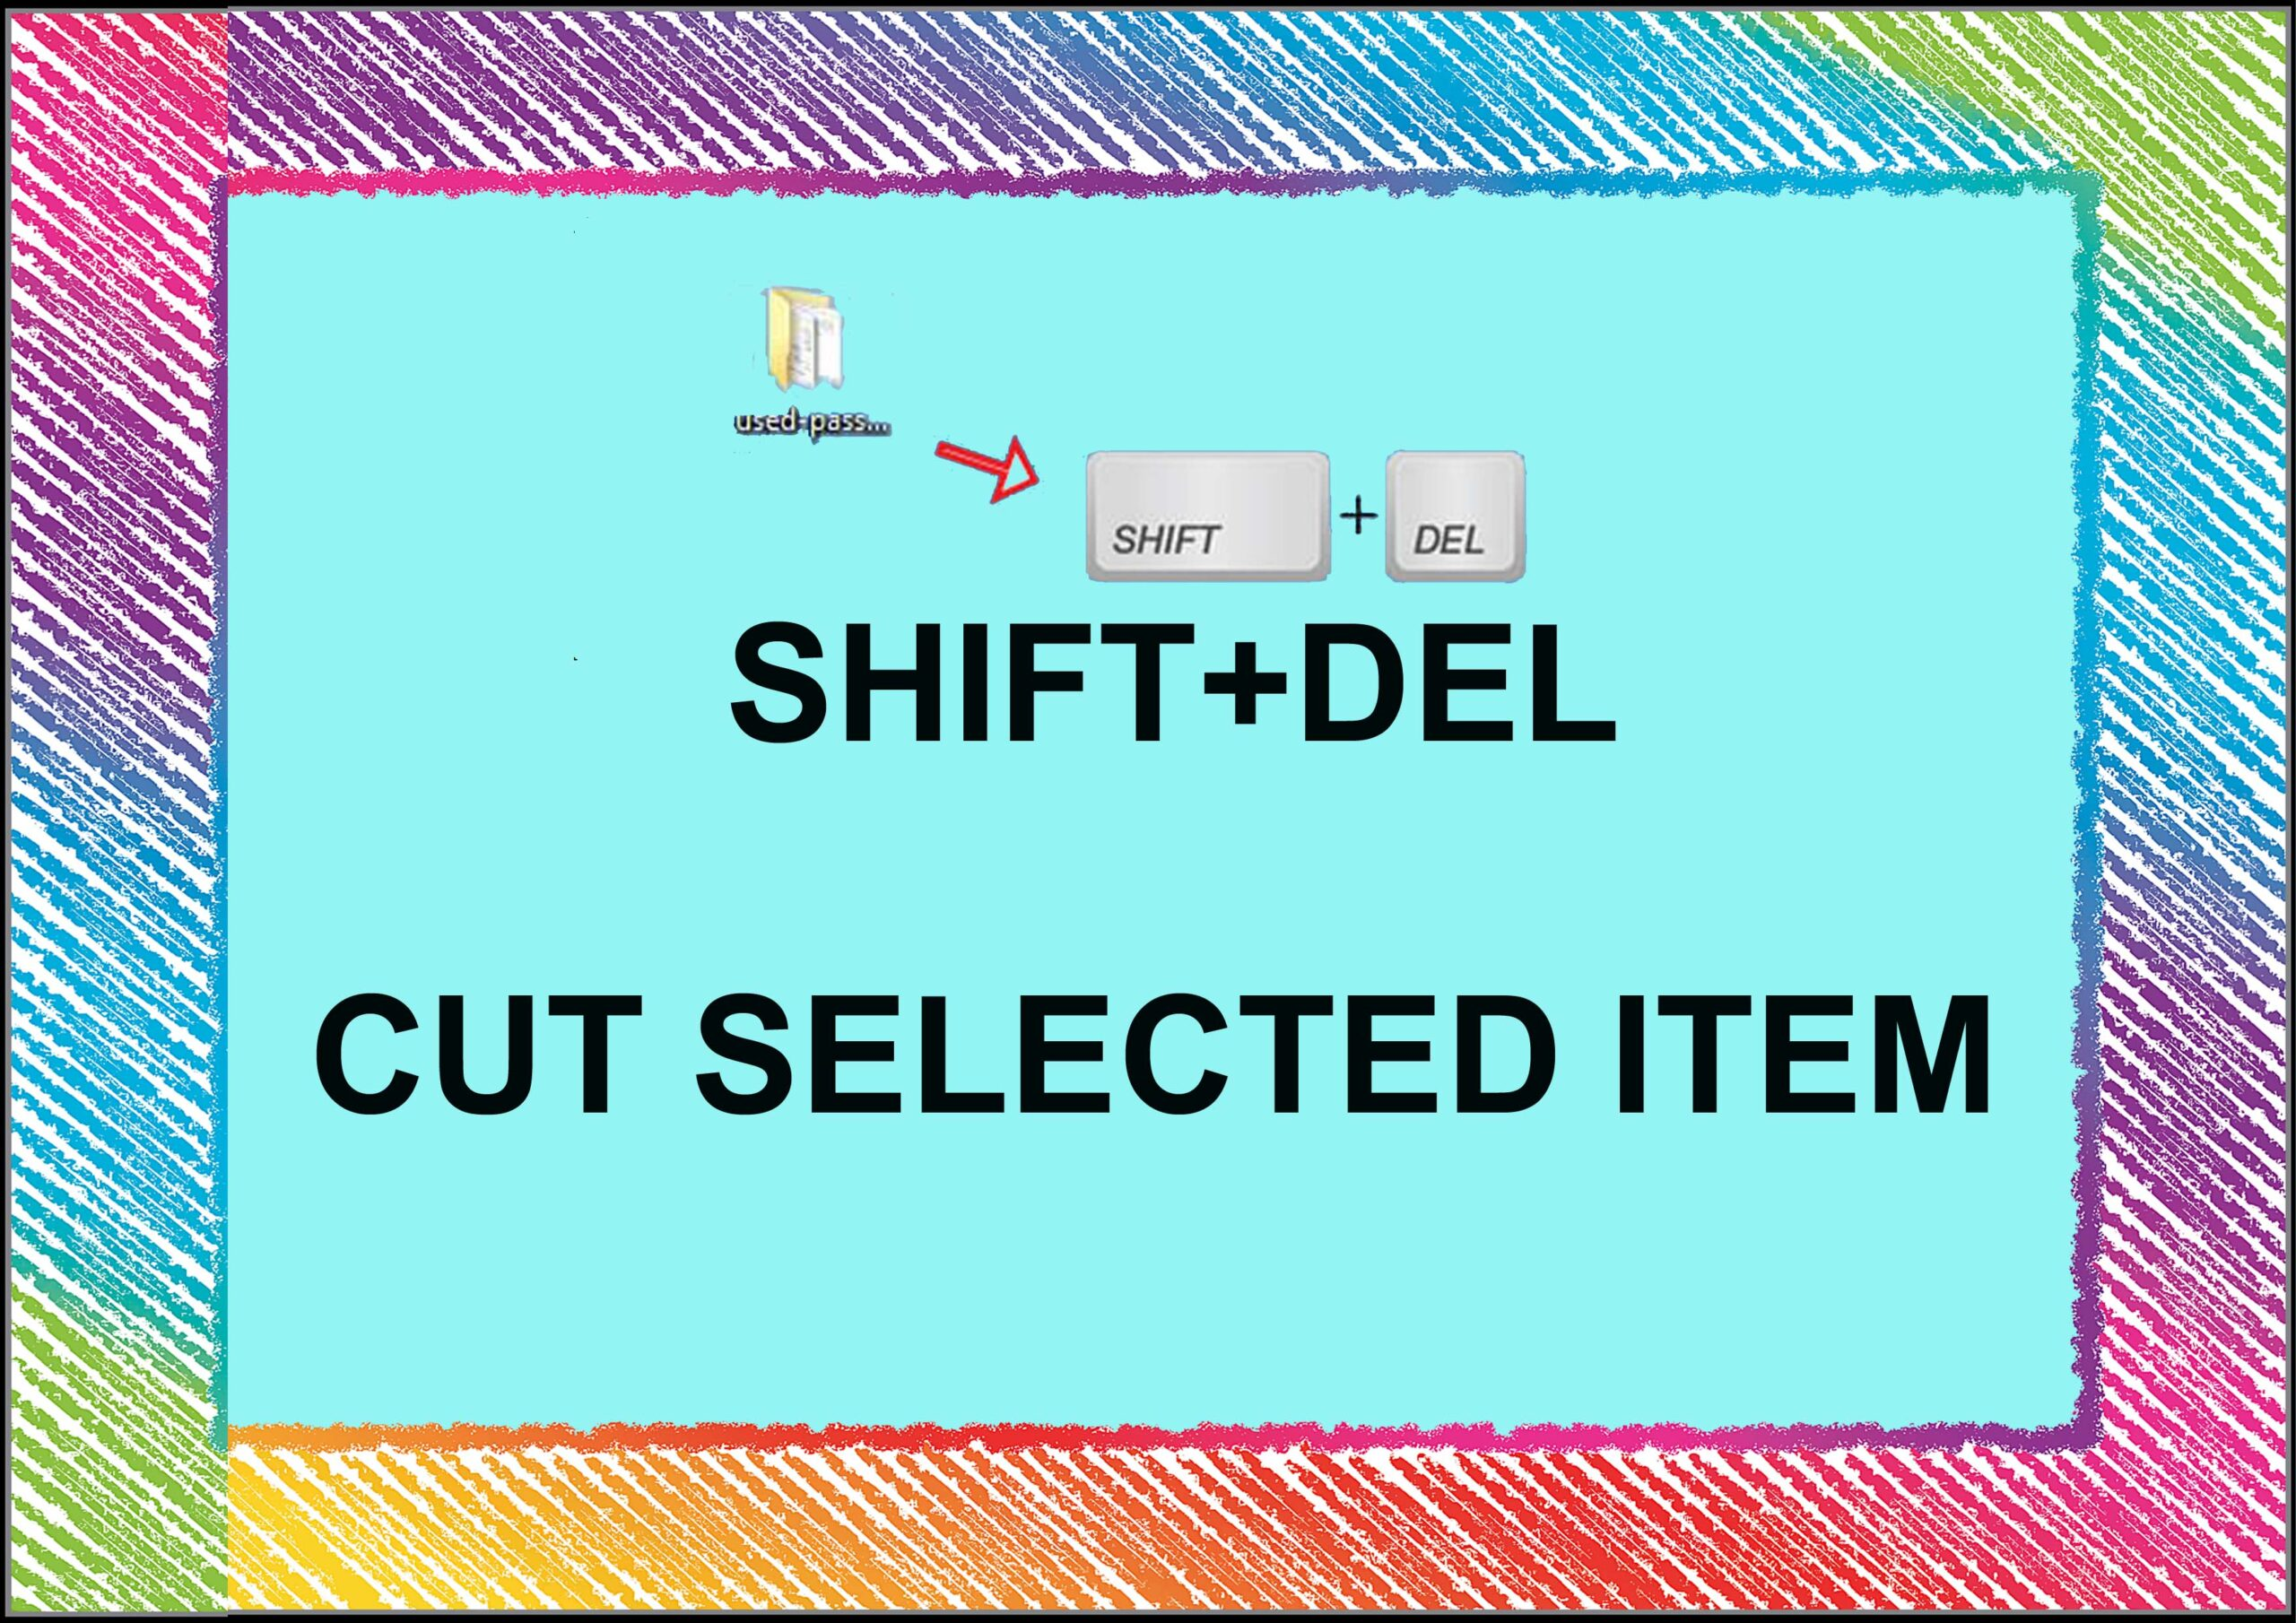 shift+del=cut selected item